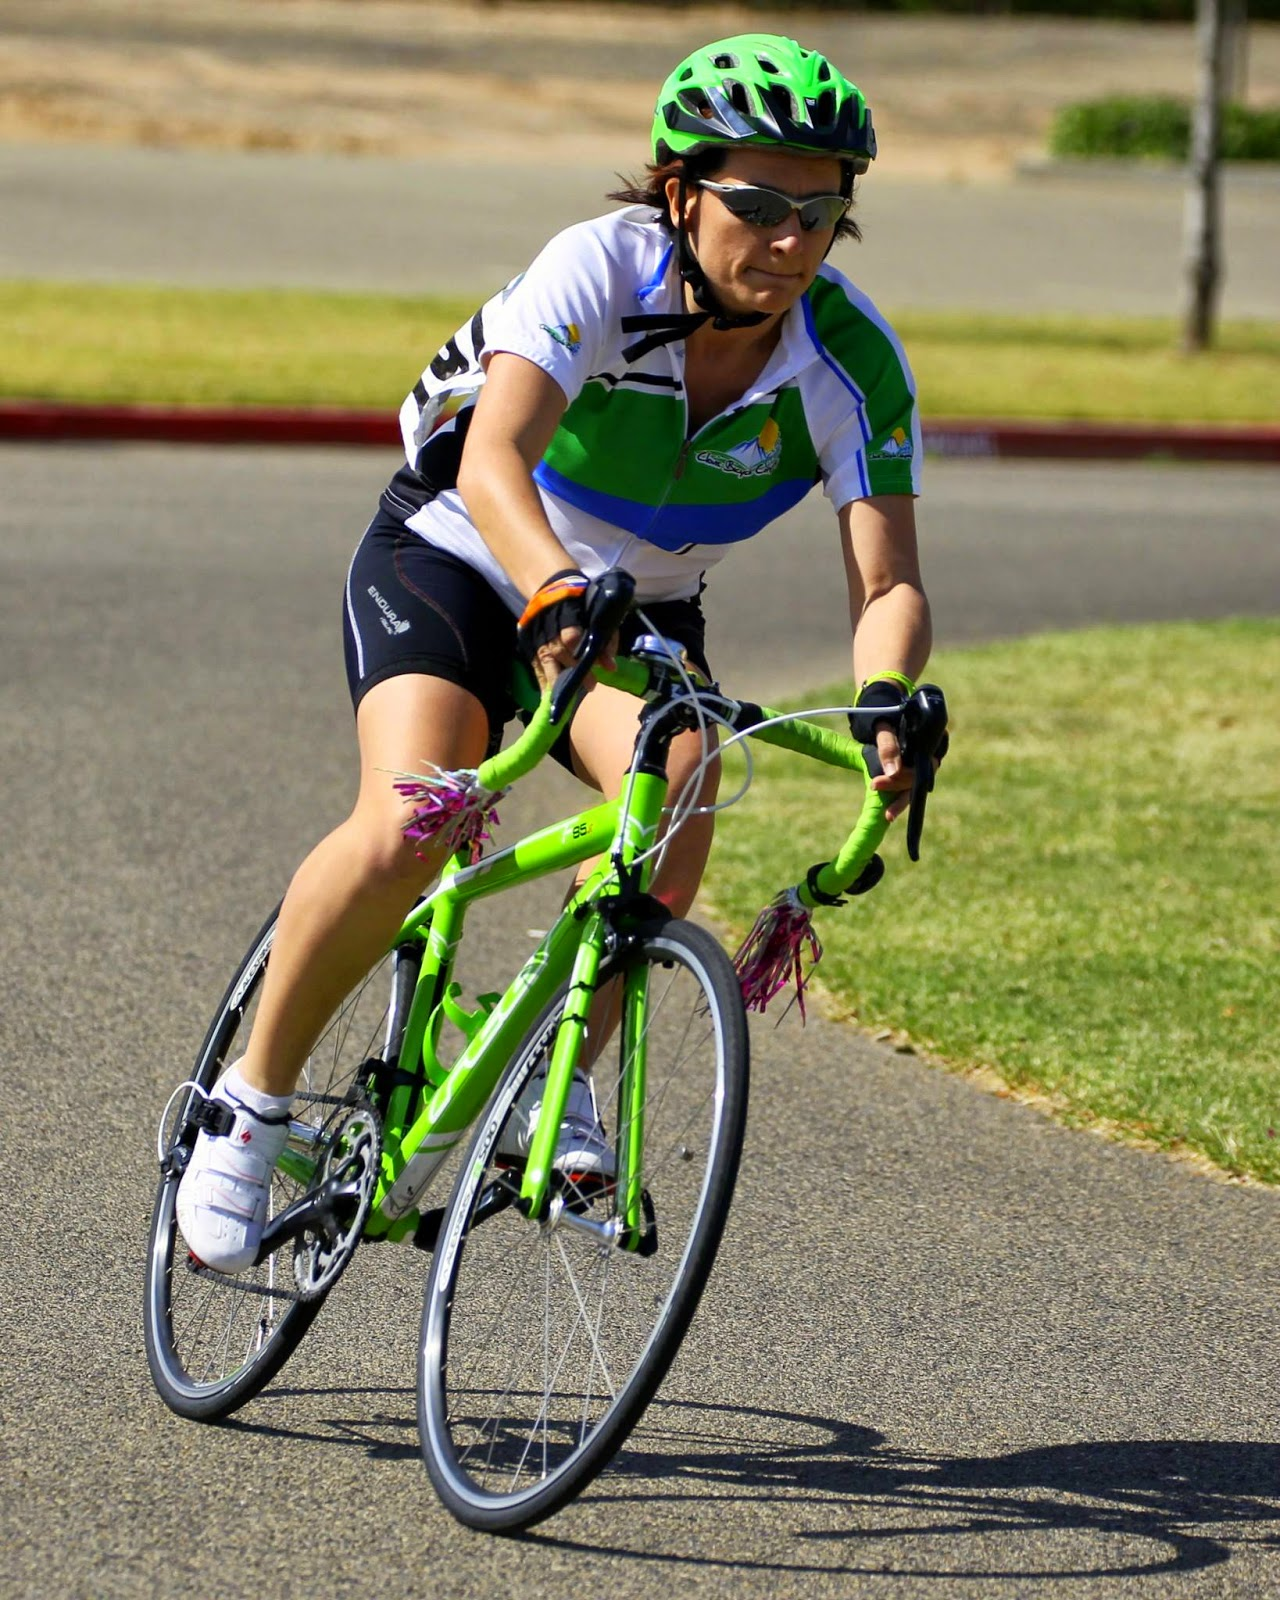 Beth Bridges, The Networking Motivator and Triathlete